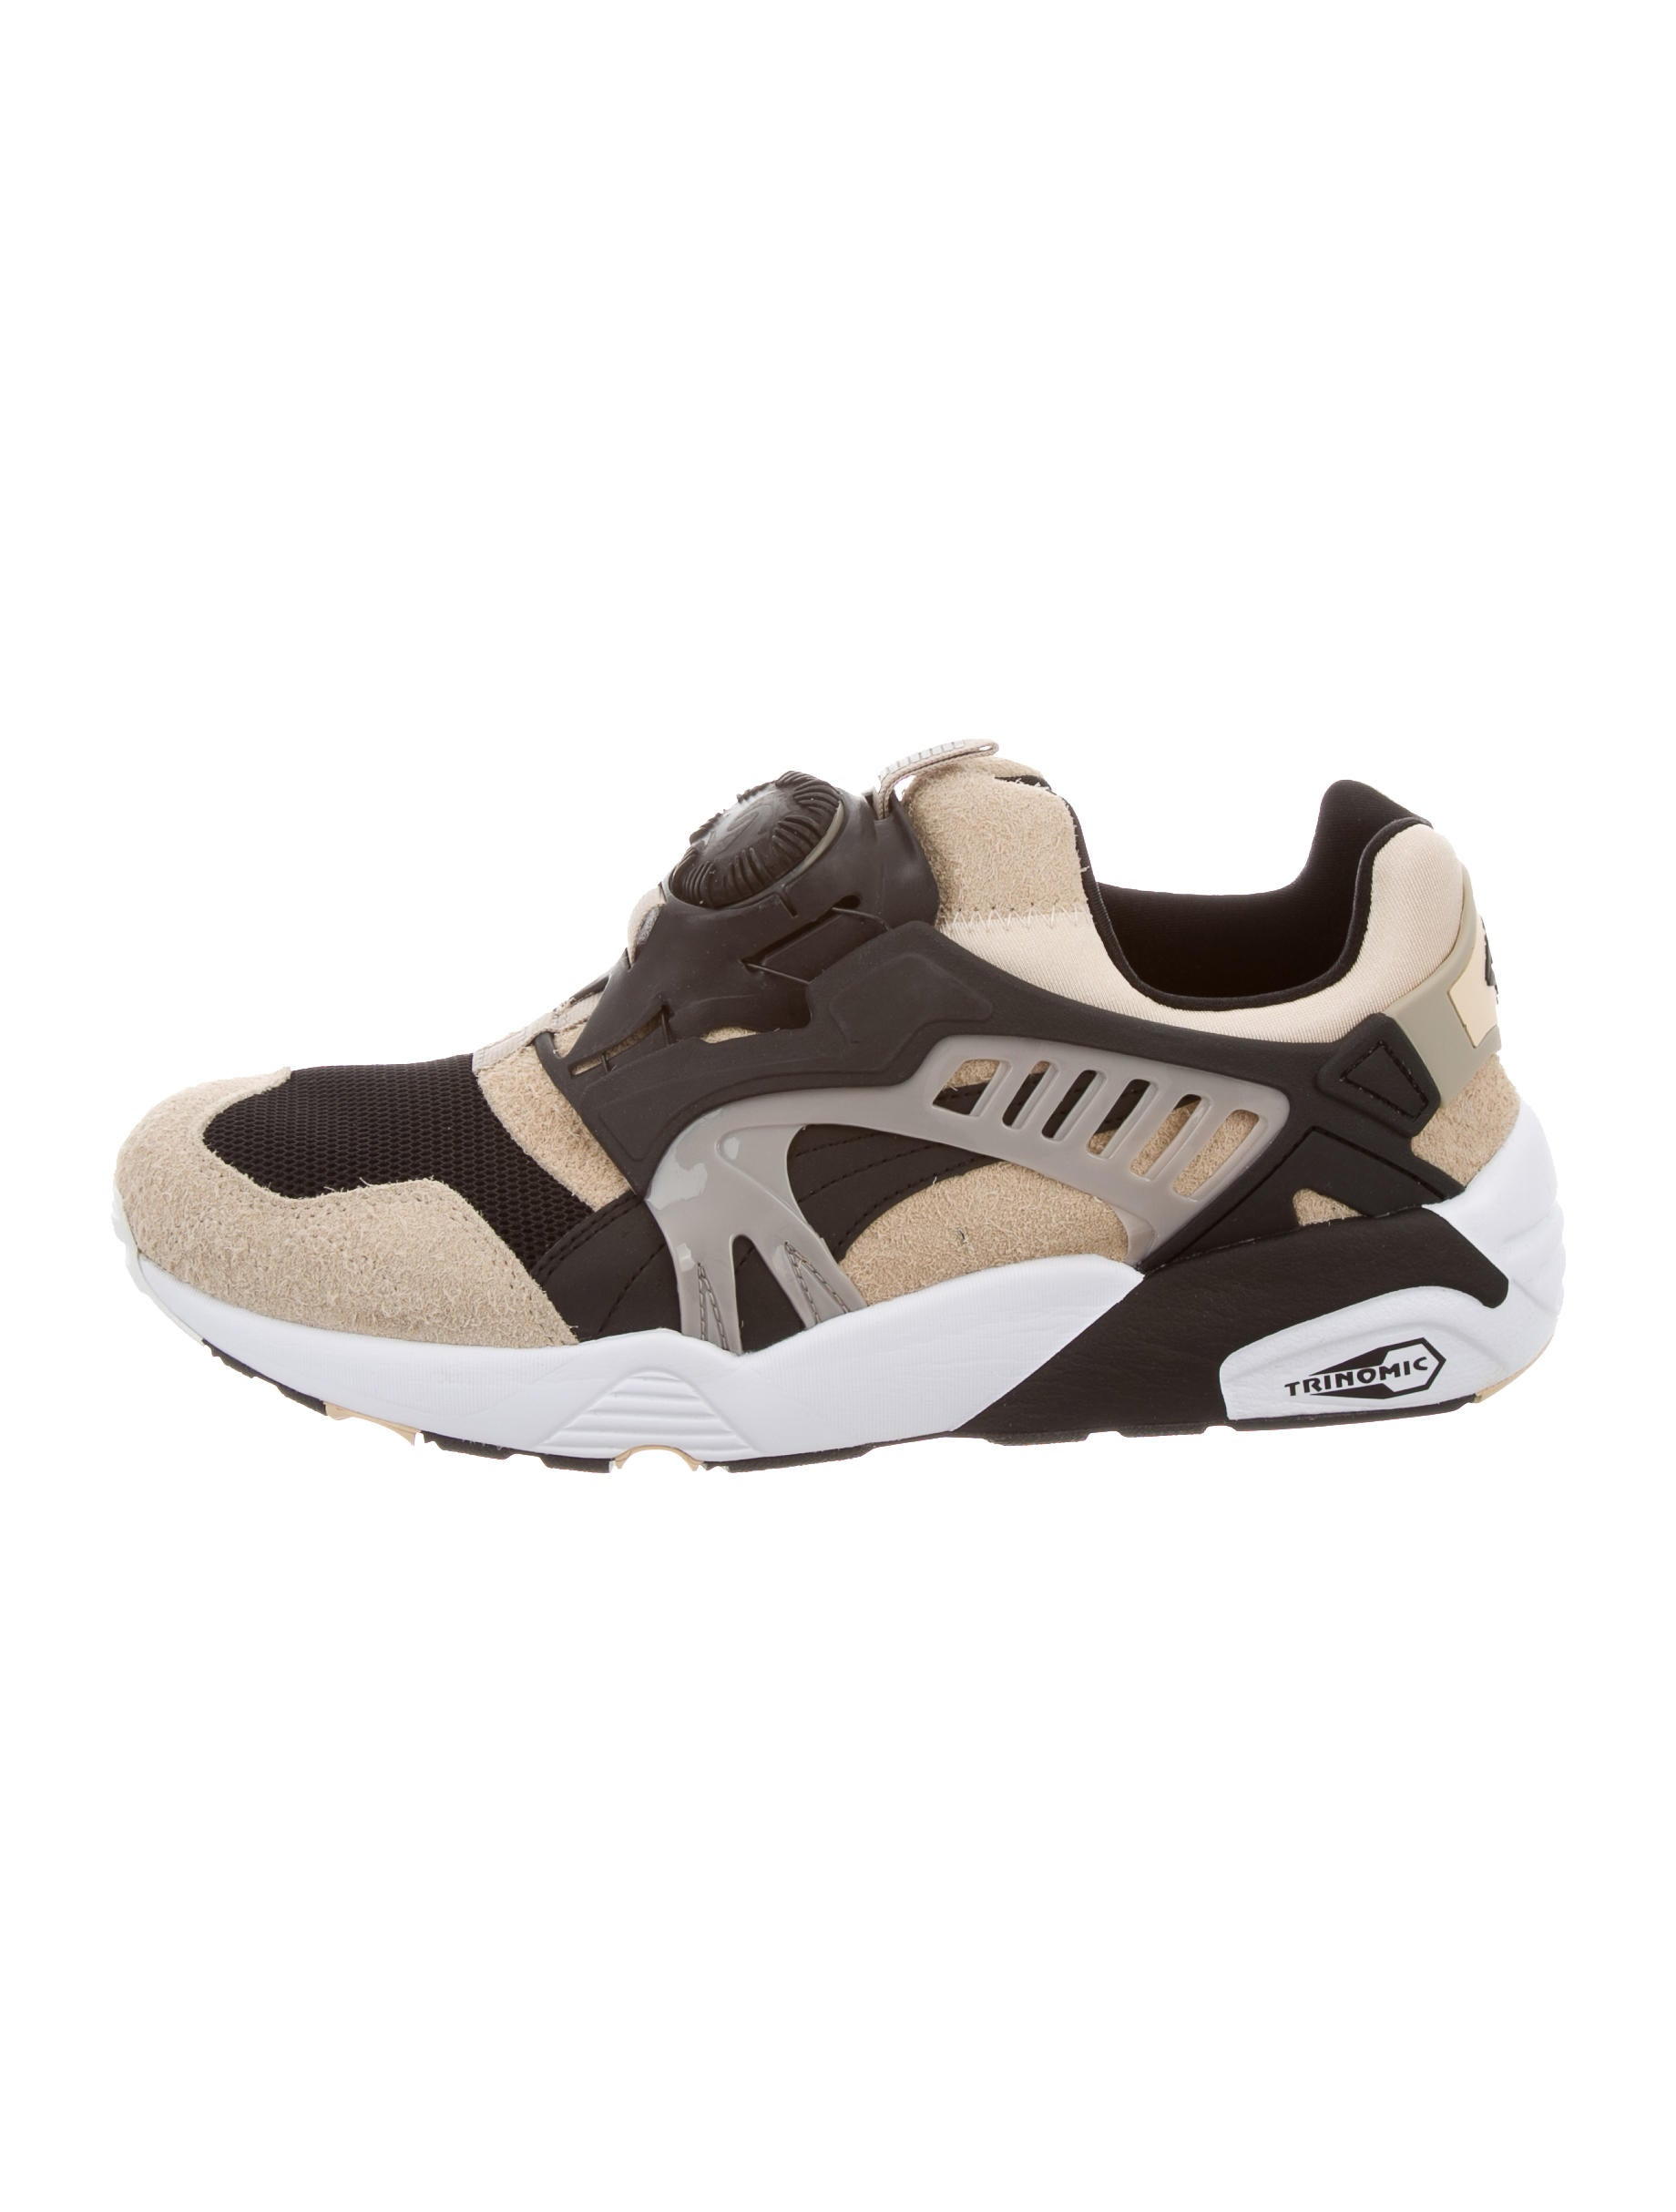 puma disc blaze desert trooper sneakers shoes. Black Bedroom Furniture Sets. Home Design Ideas